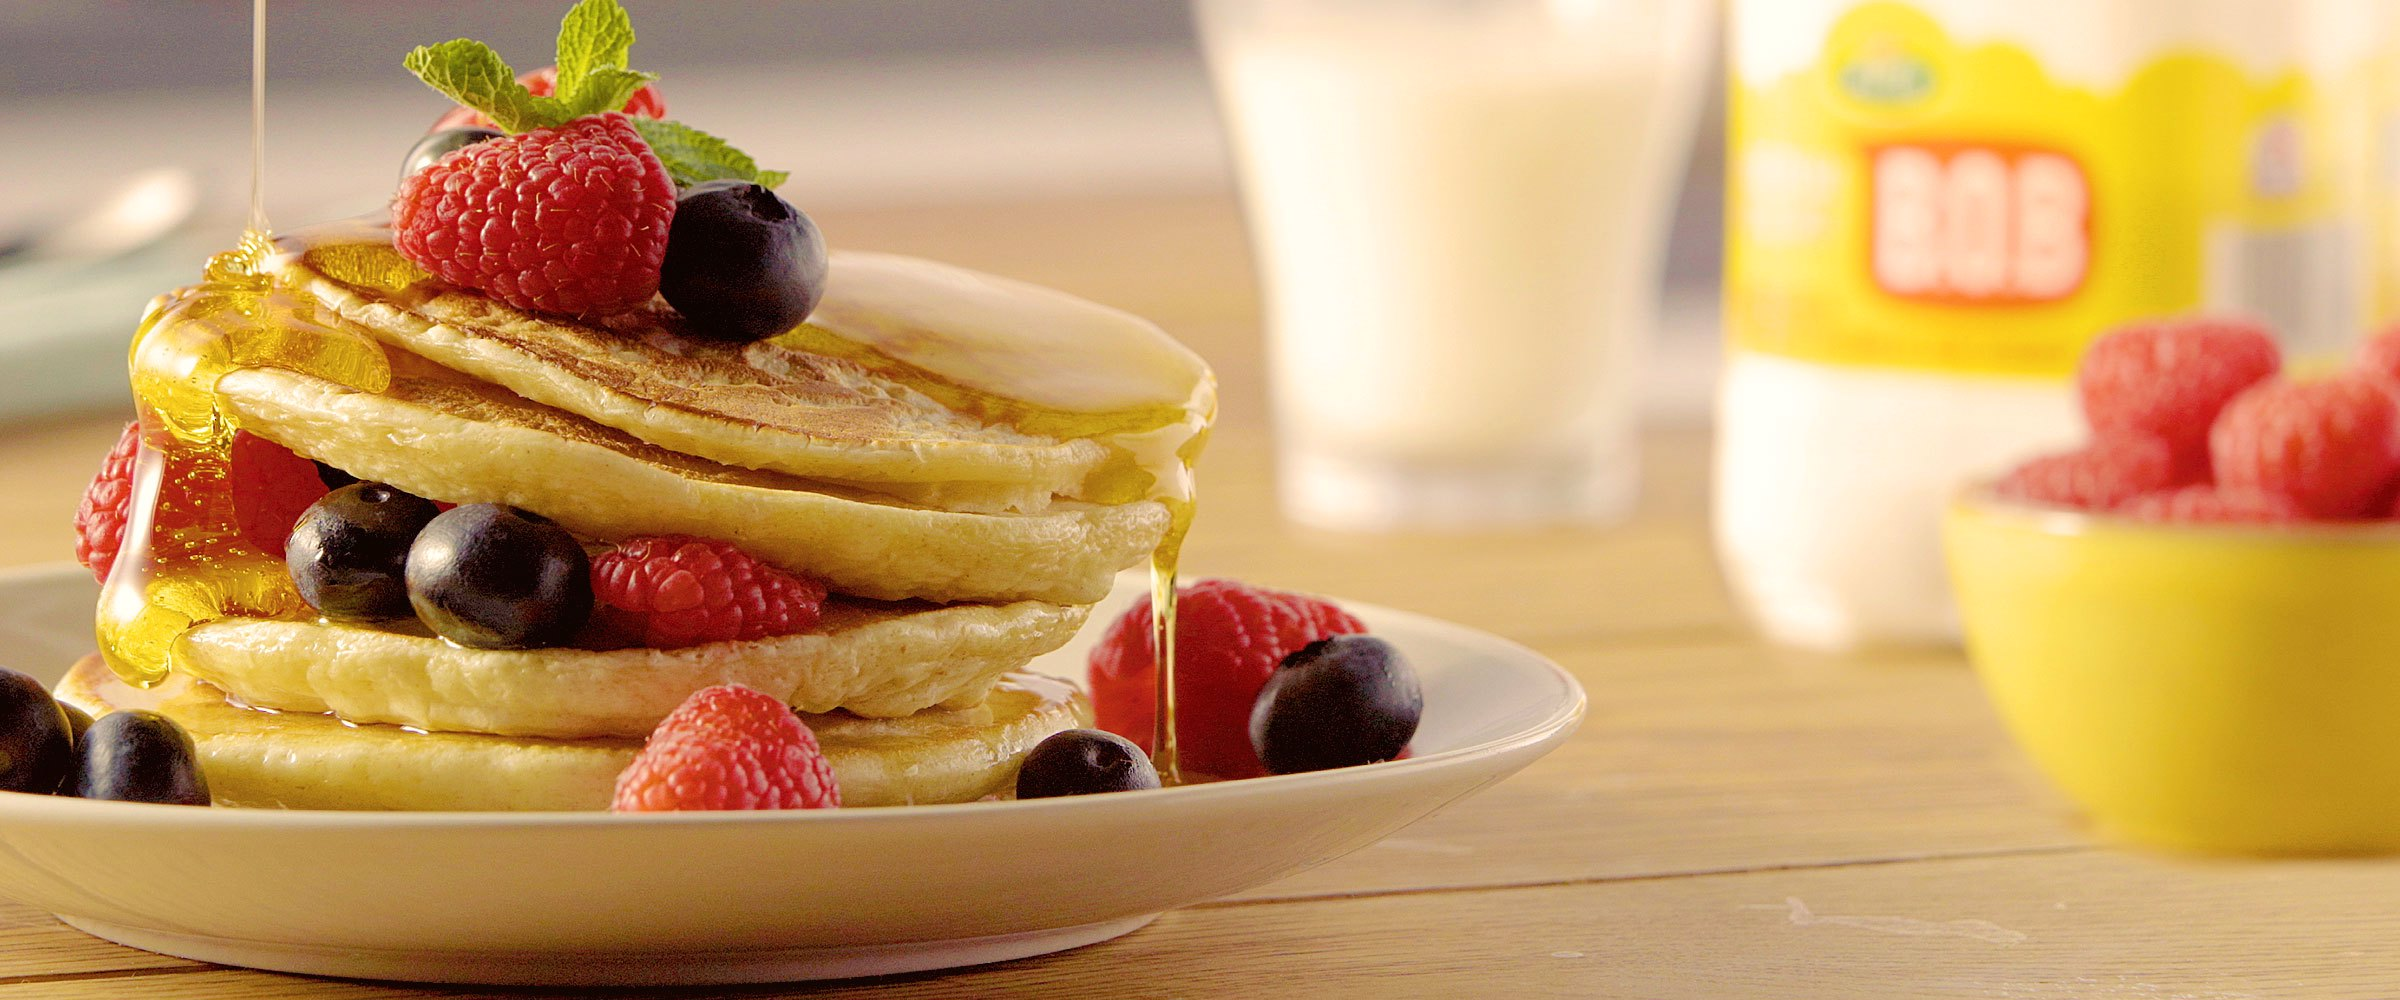 A stack of pancakes covered in honey and berries